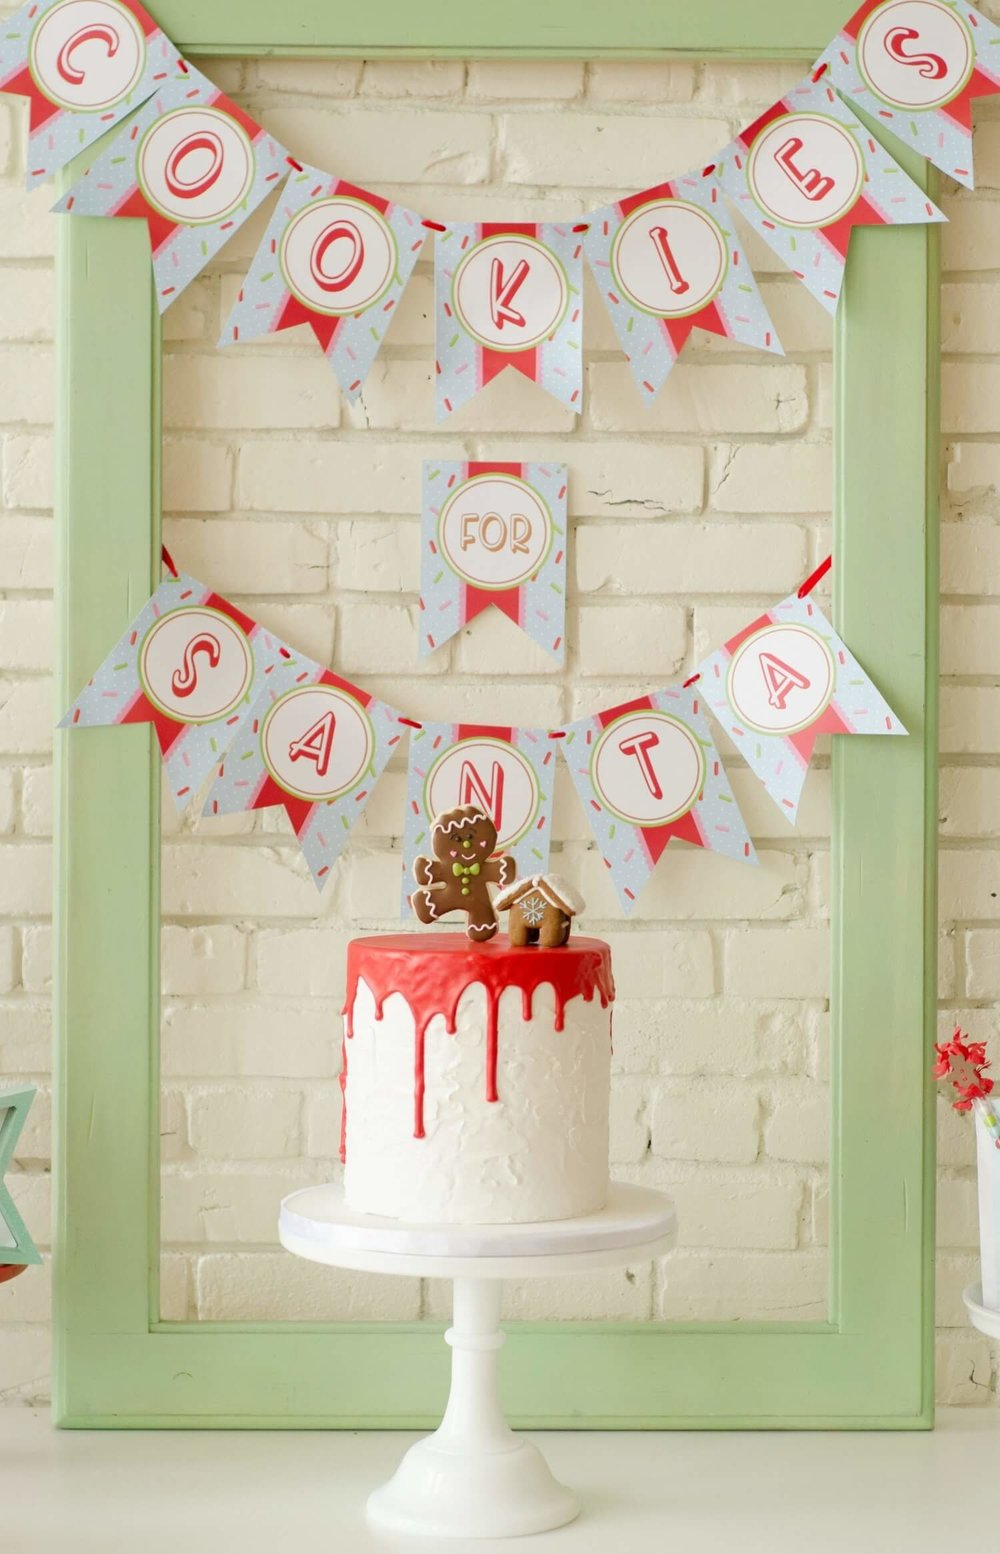 Super cute cake for a Cookies for Santa party, plus you get direct links to printables, banners and more.